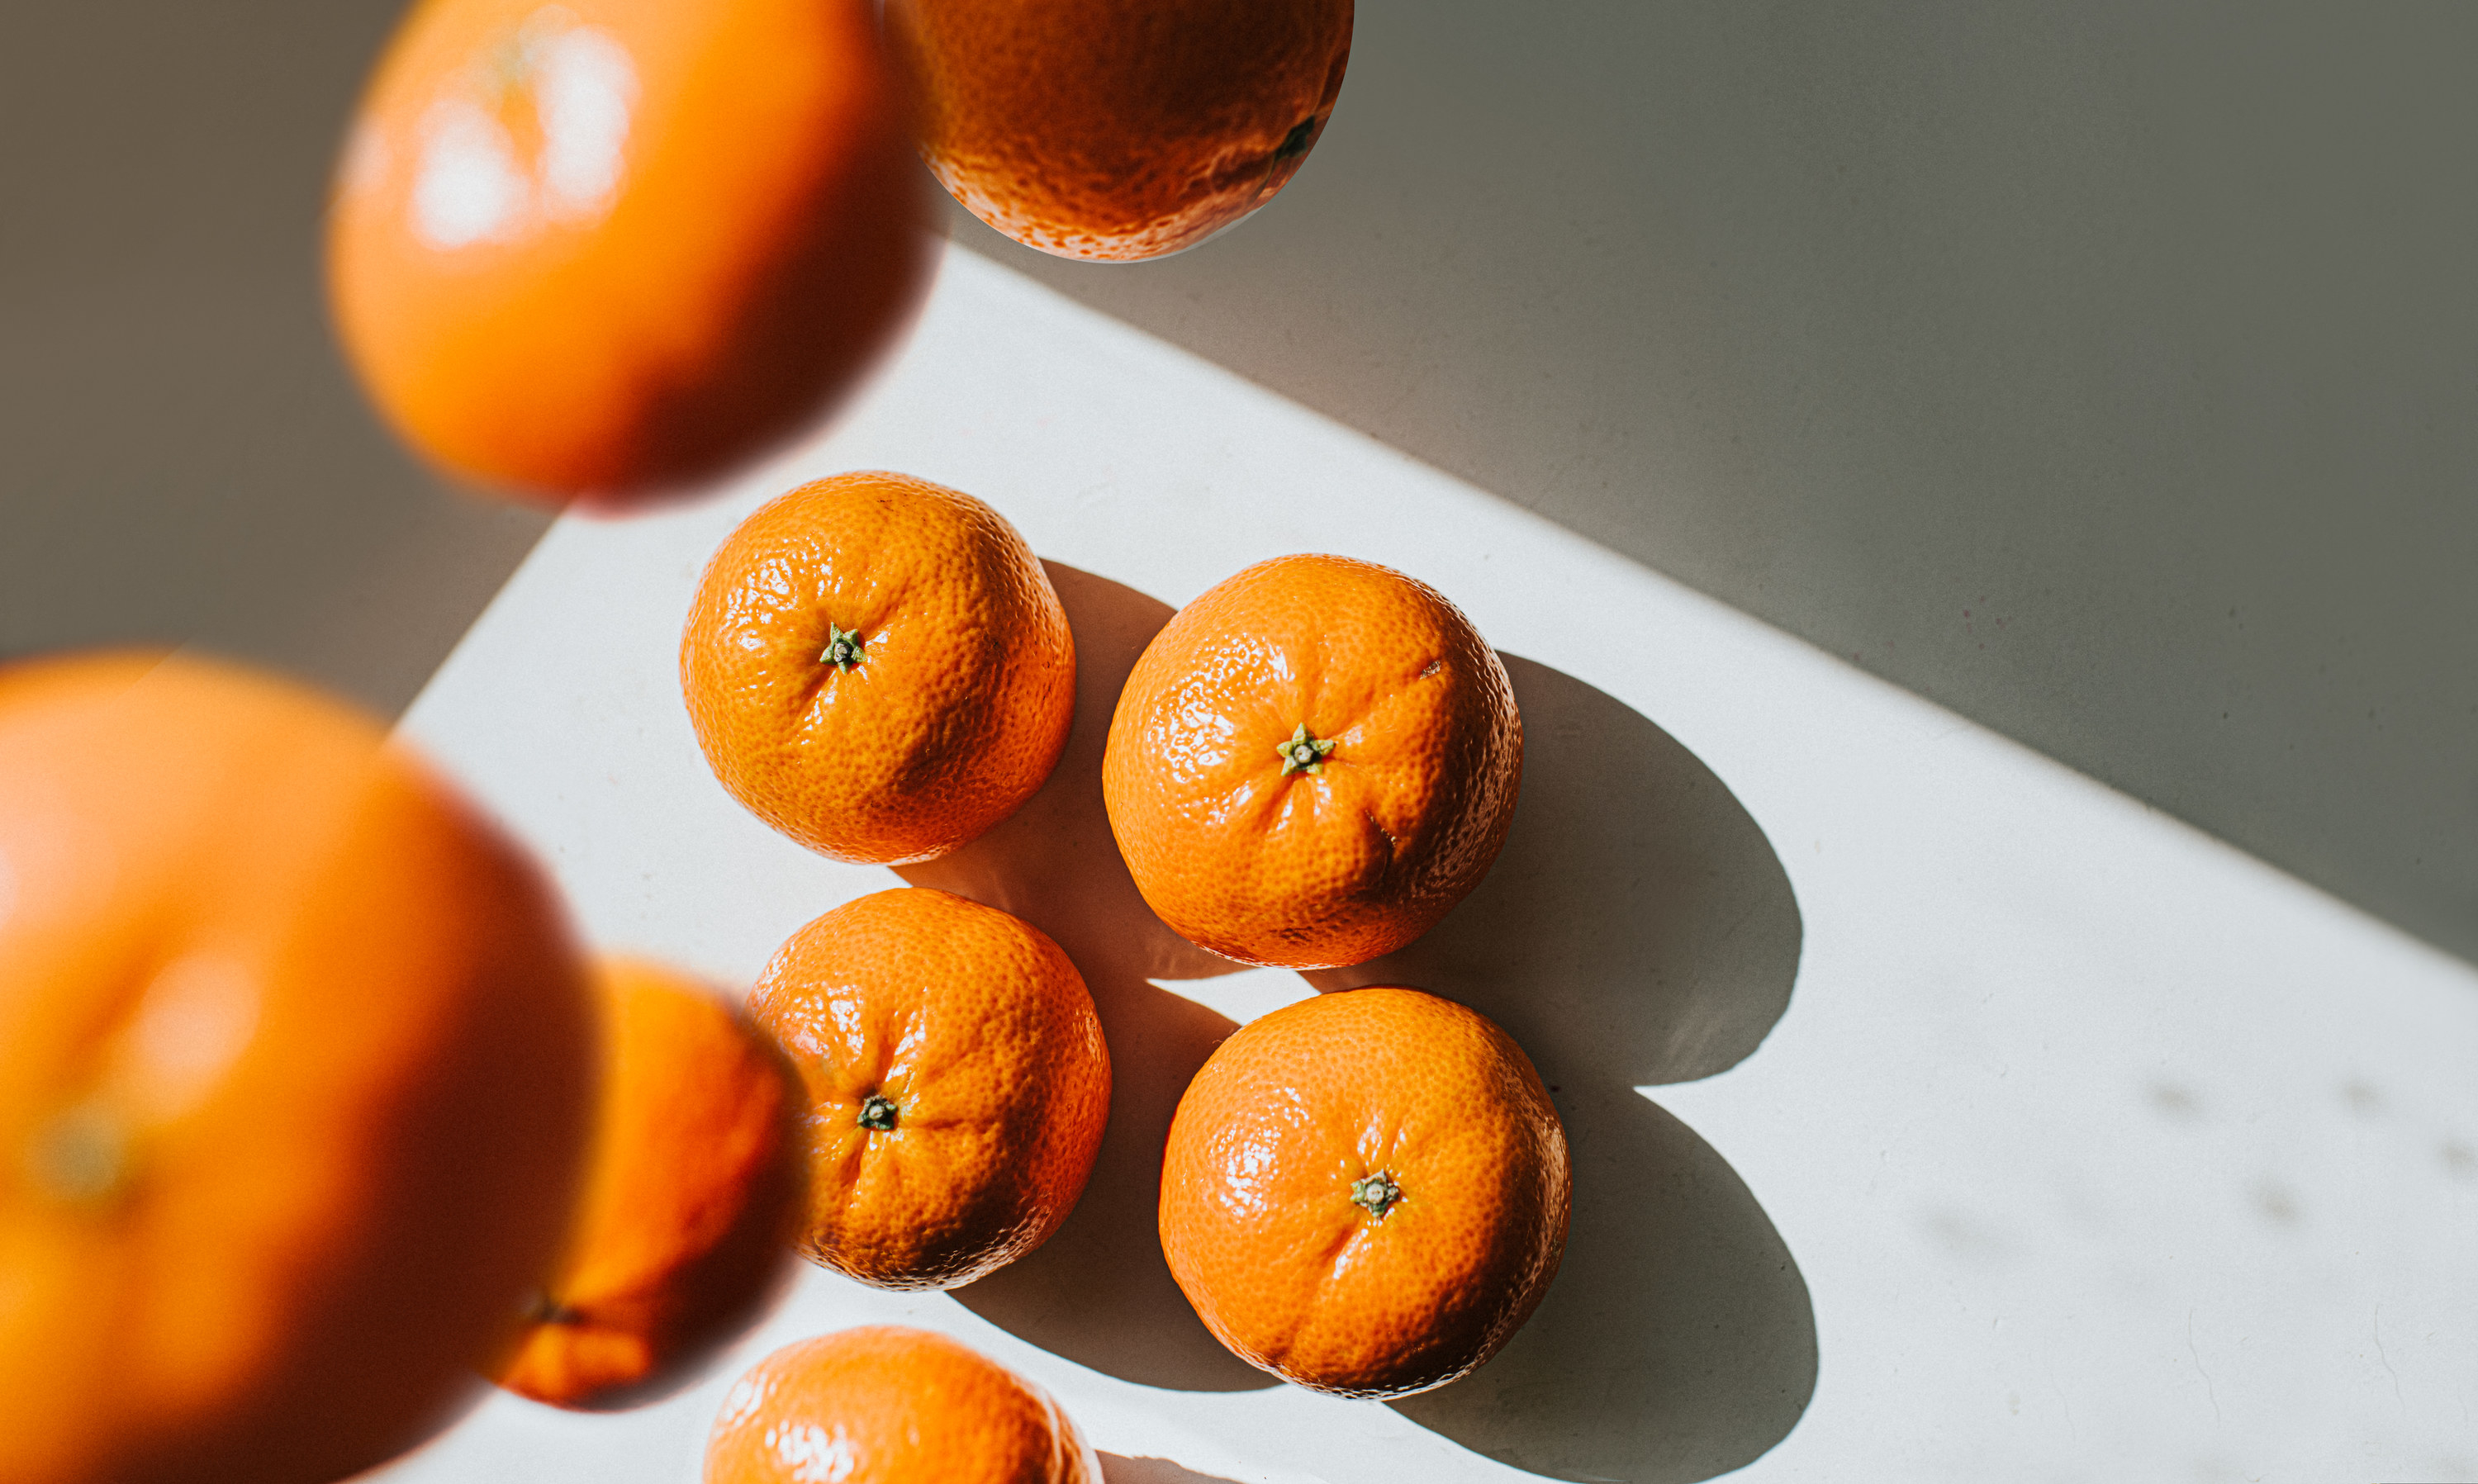 Oranges falling onto a white surface.